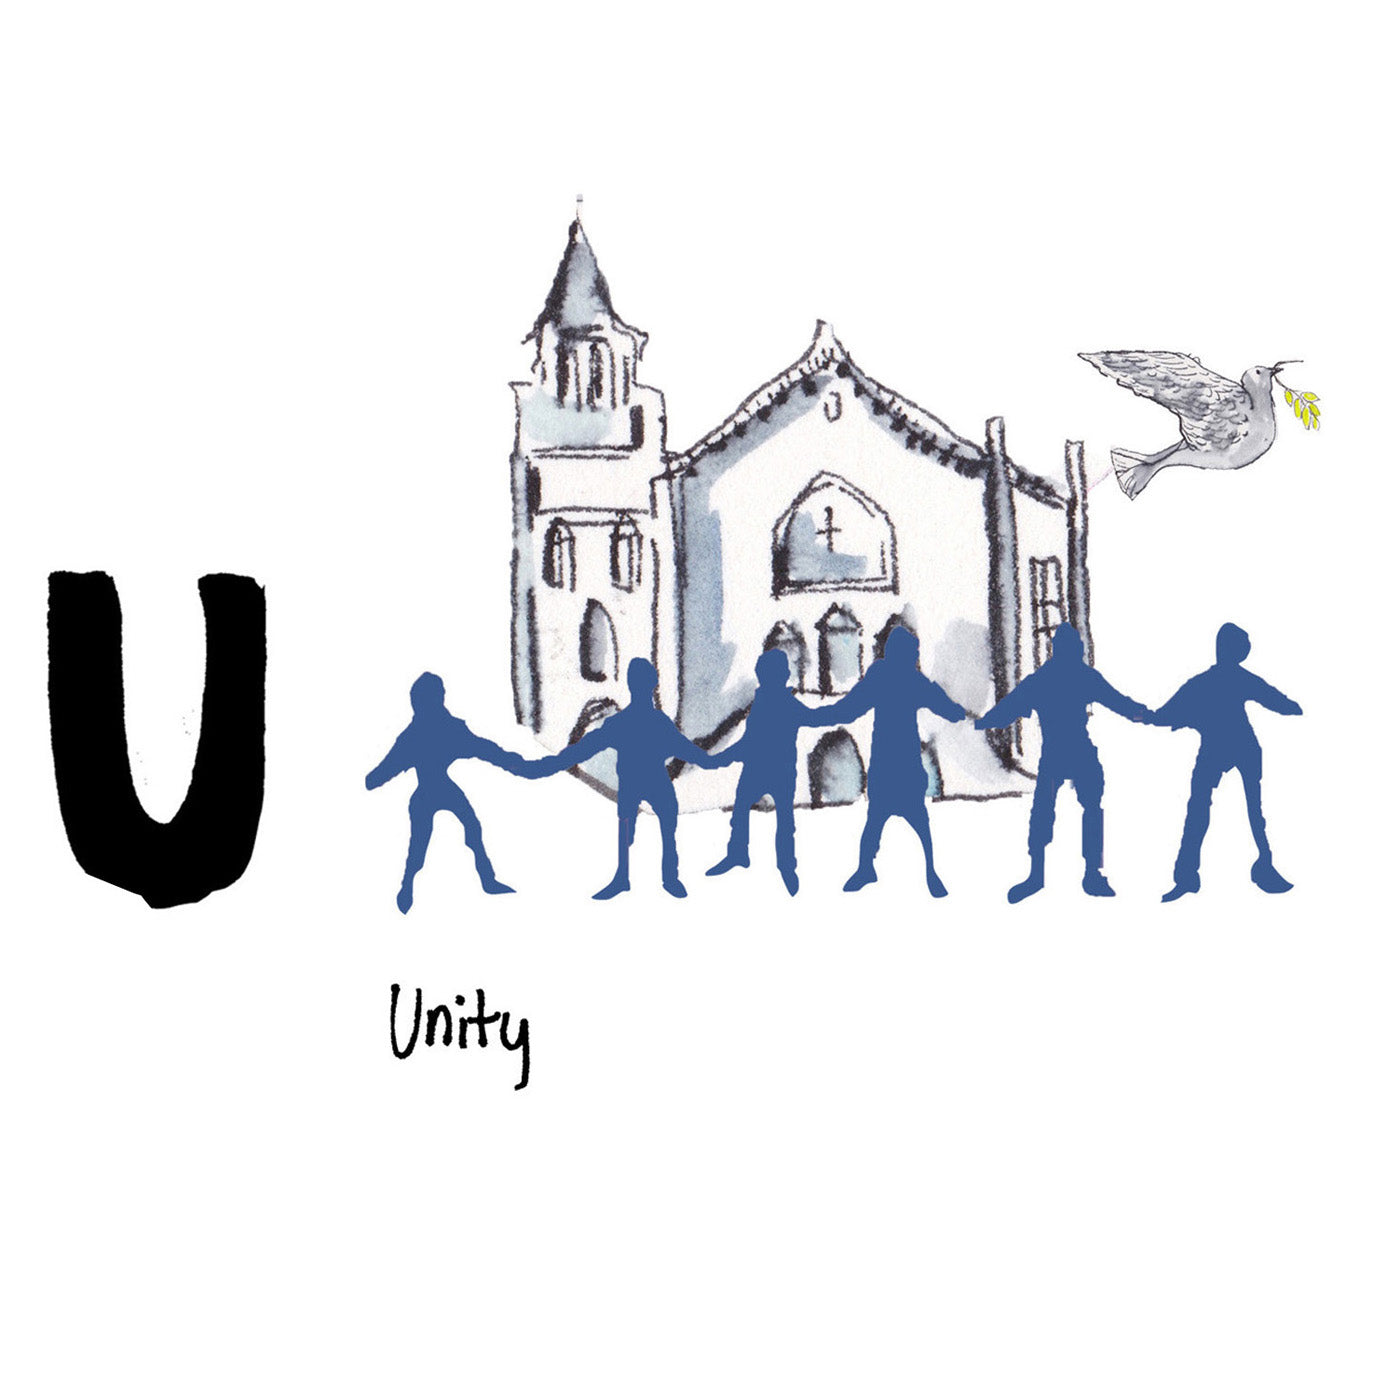 U is for Unity. The city of Charleston has come together and shown incredible resilience after the devastating shooting at the Emanuel African Methodist Episcopal Church in 2015. The victims will always be remembered.